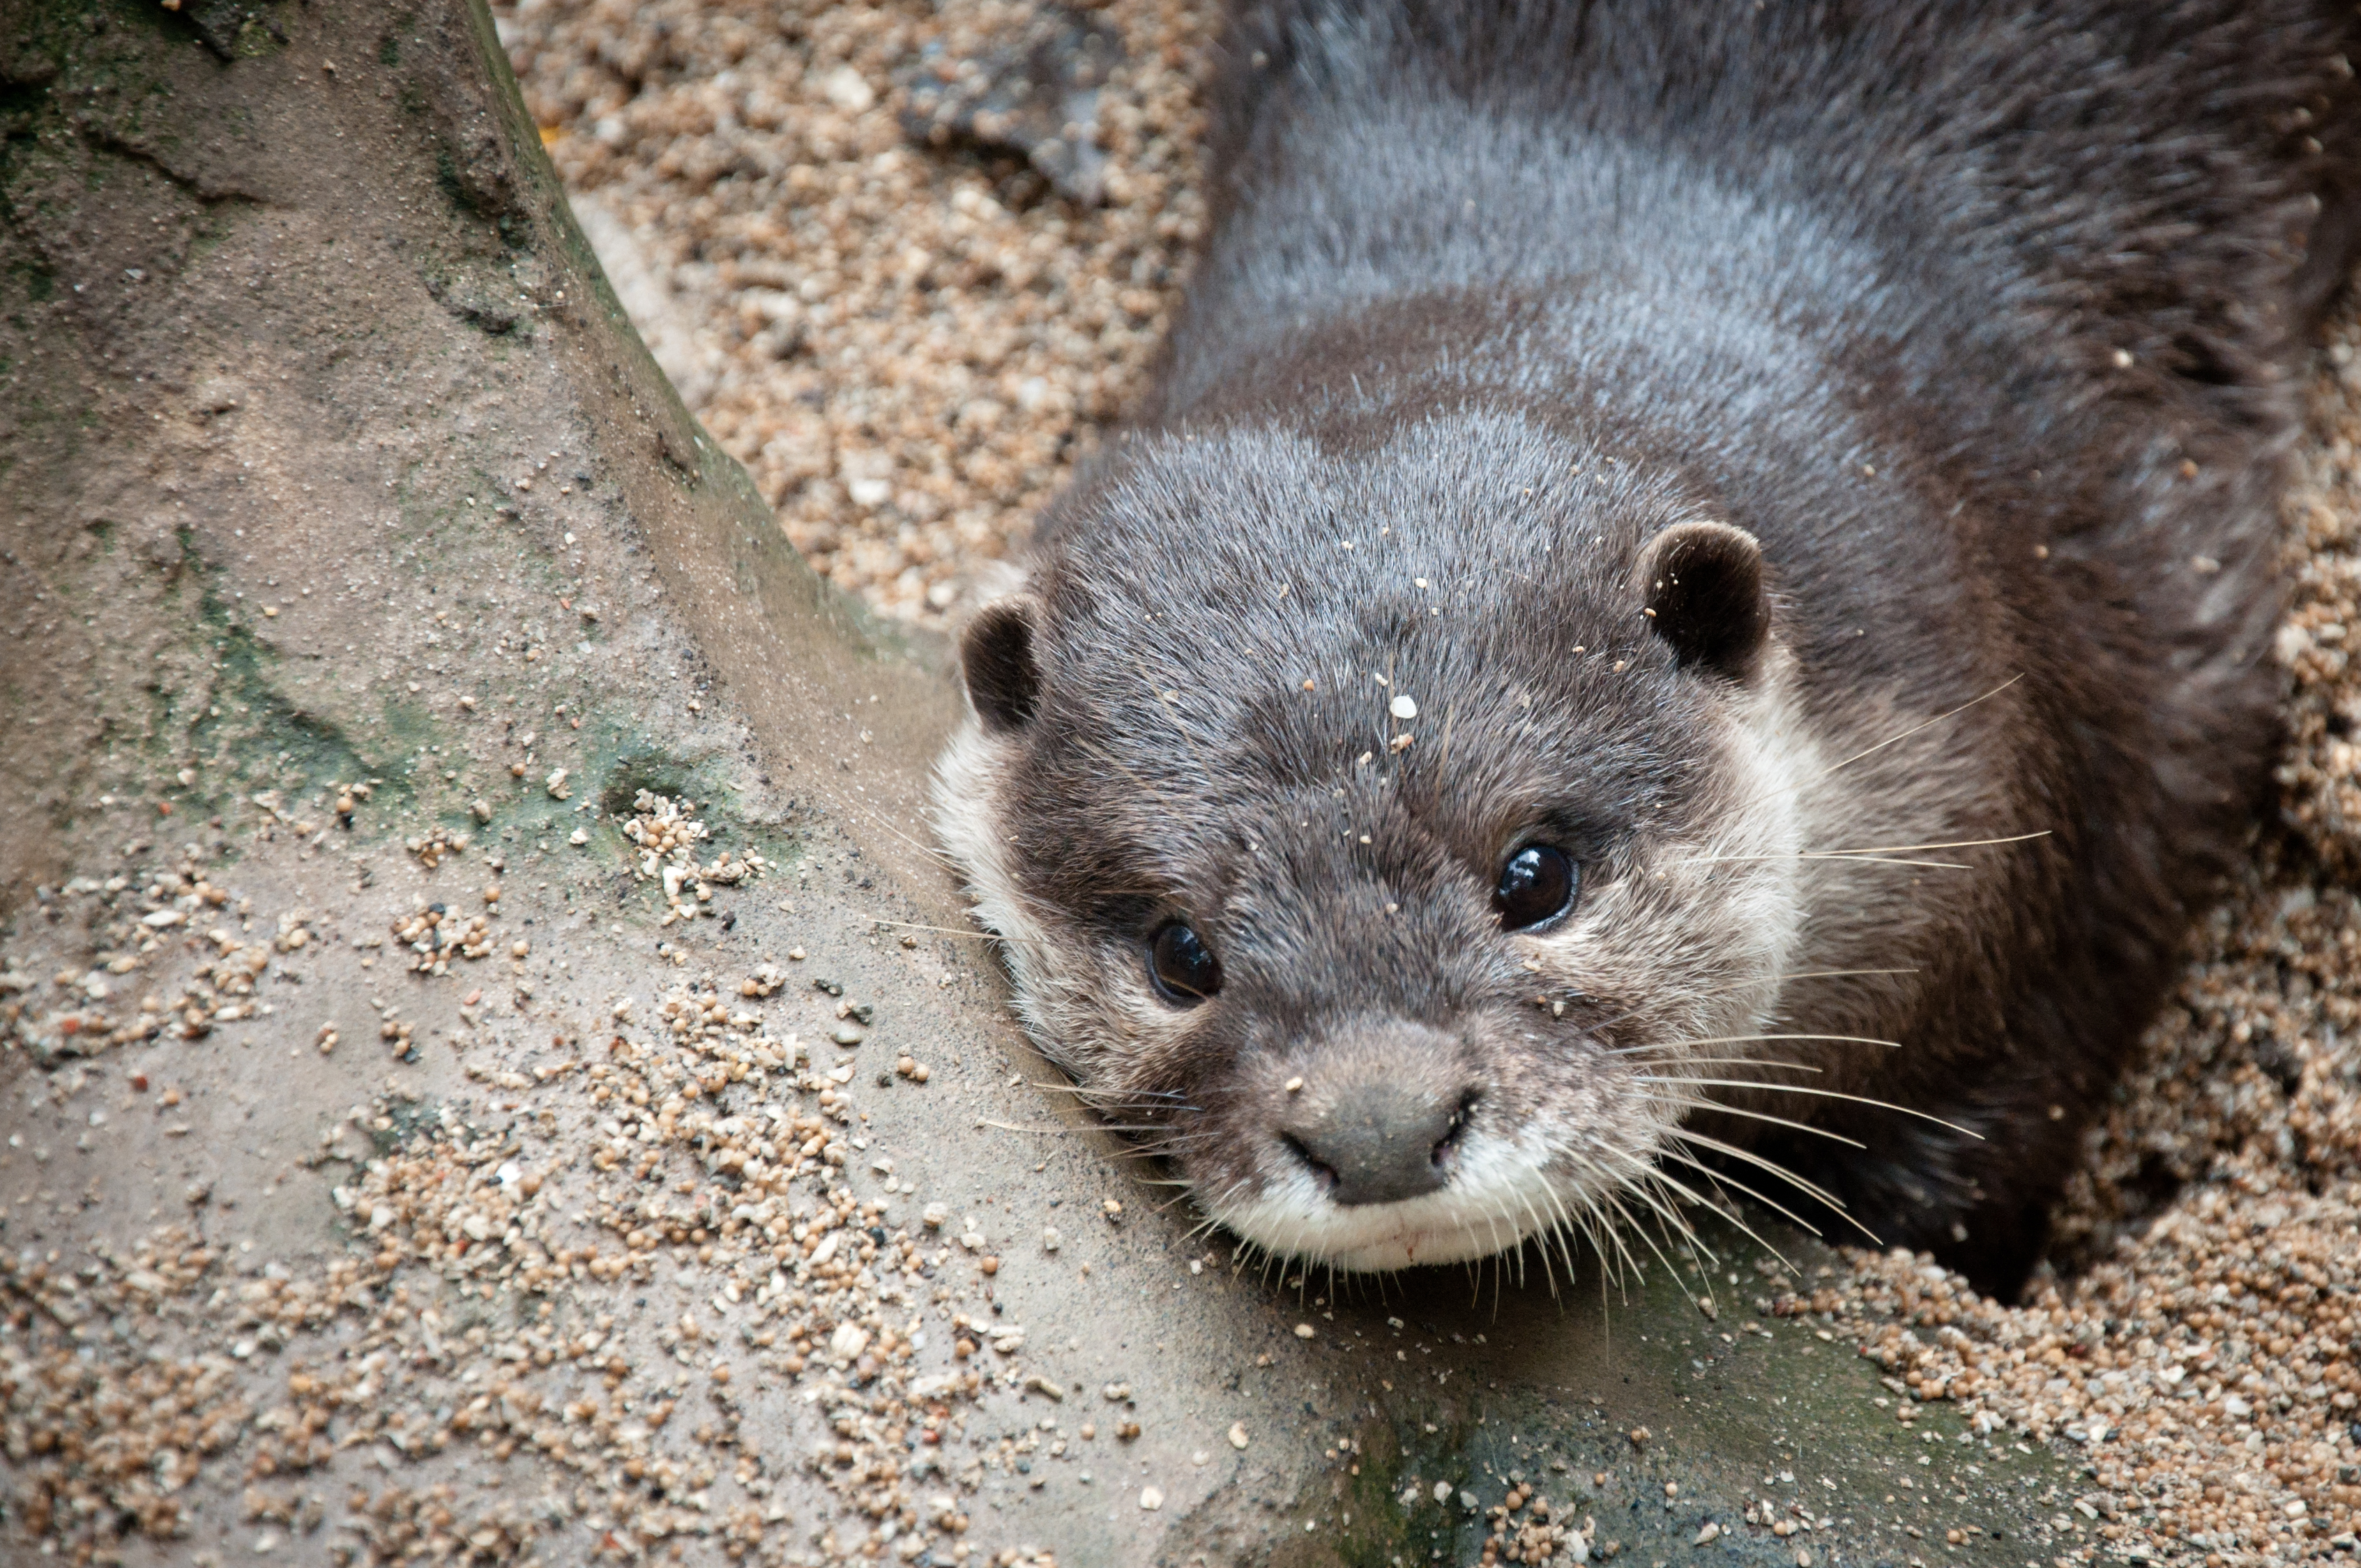 Otter, Animal, Asia, Asian, Curious, HQ Photo